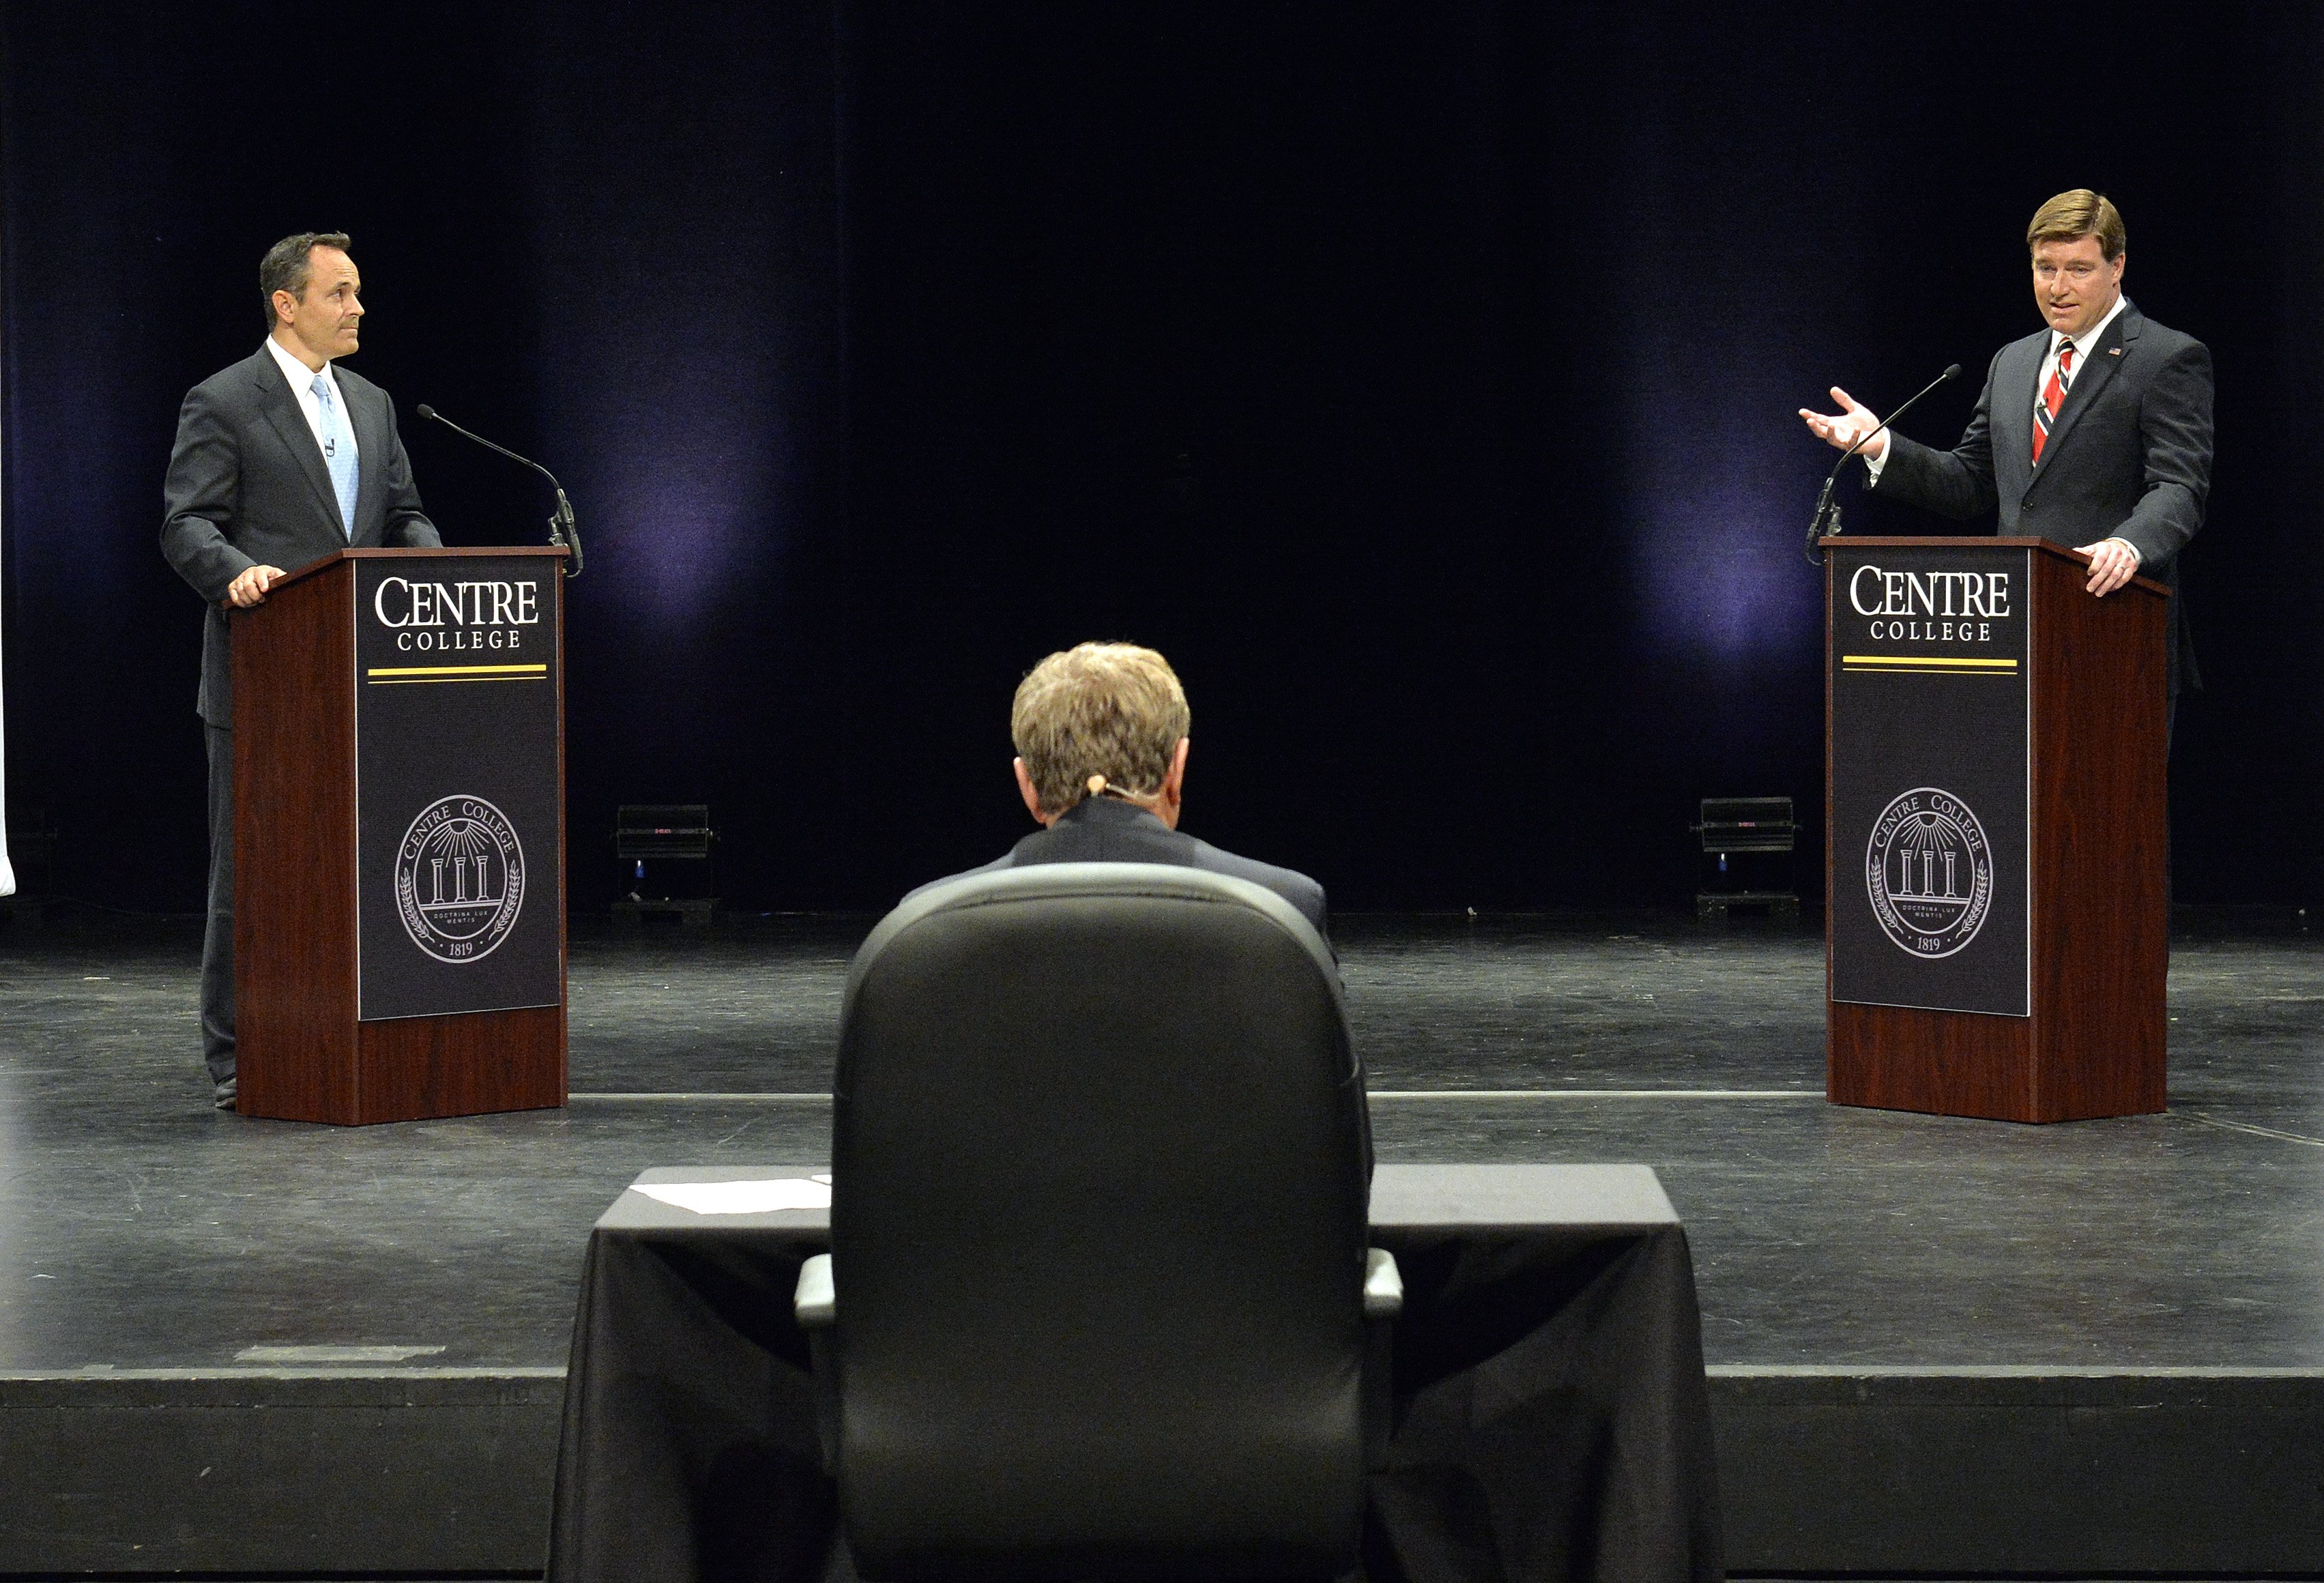 Kentucky Democratic gubernatorial candidate Jack Conway, right, responds to a question from the moderator, as his opponent, Republican Matt Bevin Looks on during the 2015 Kentucky Gubernatorial Debate hosted by Centre College on Oct. 6, 2015, in Danville, Ky.